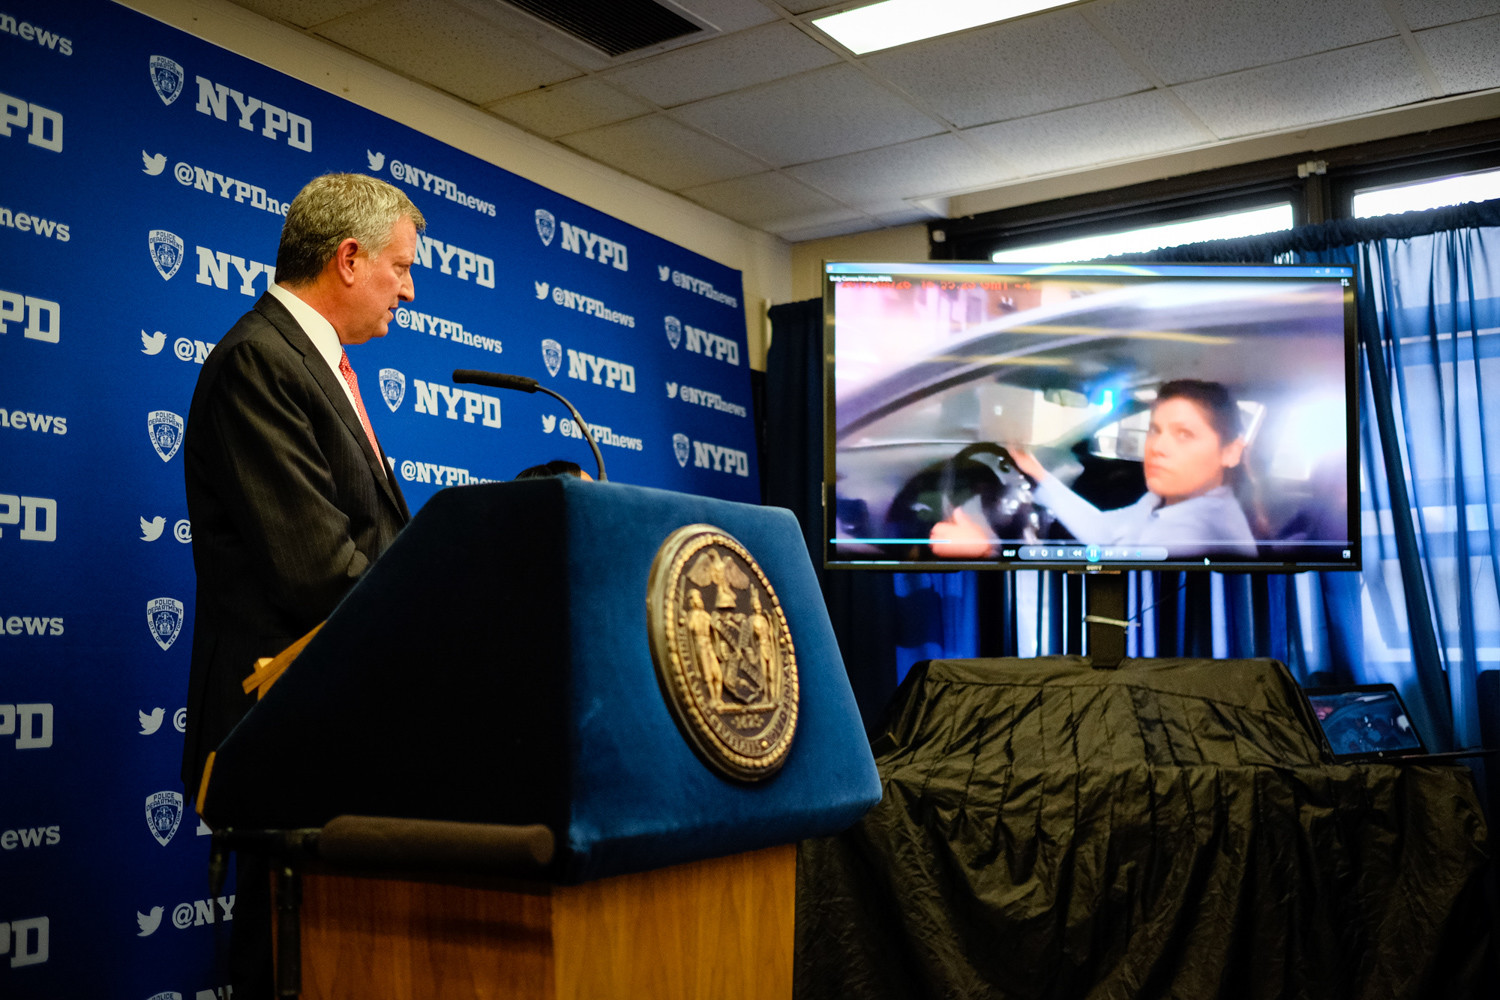 Mayor Bill de Blasio, shown describing an image captured by a police body camera, announced an accelerated plan to equip all patrol officers with them.